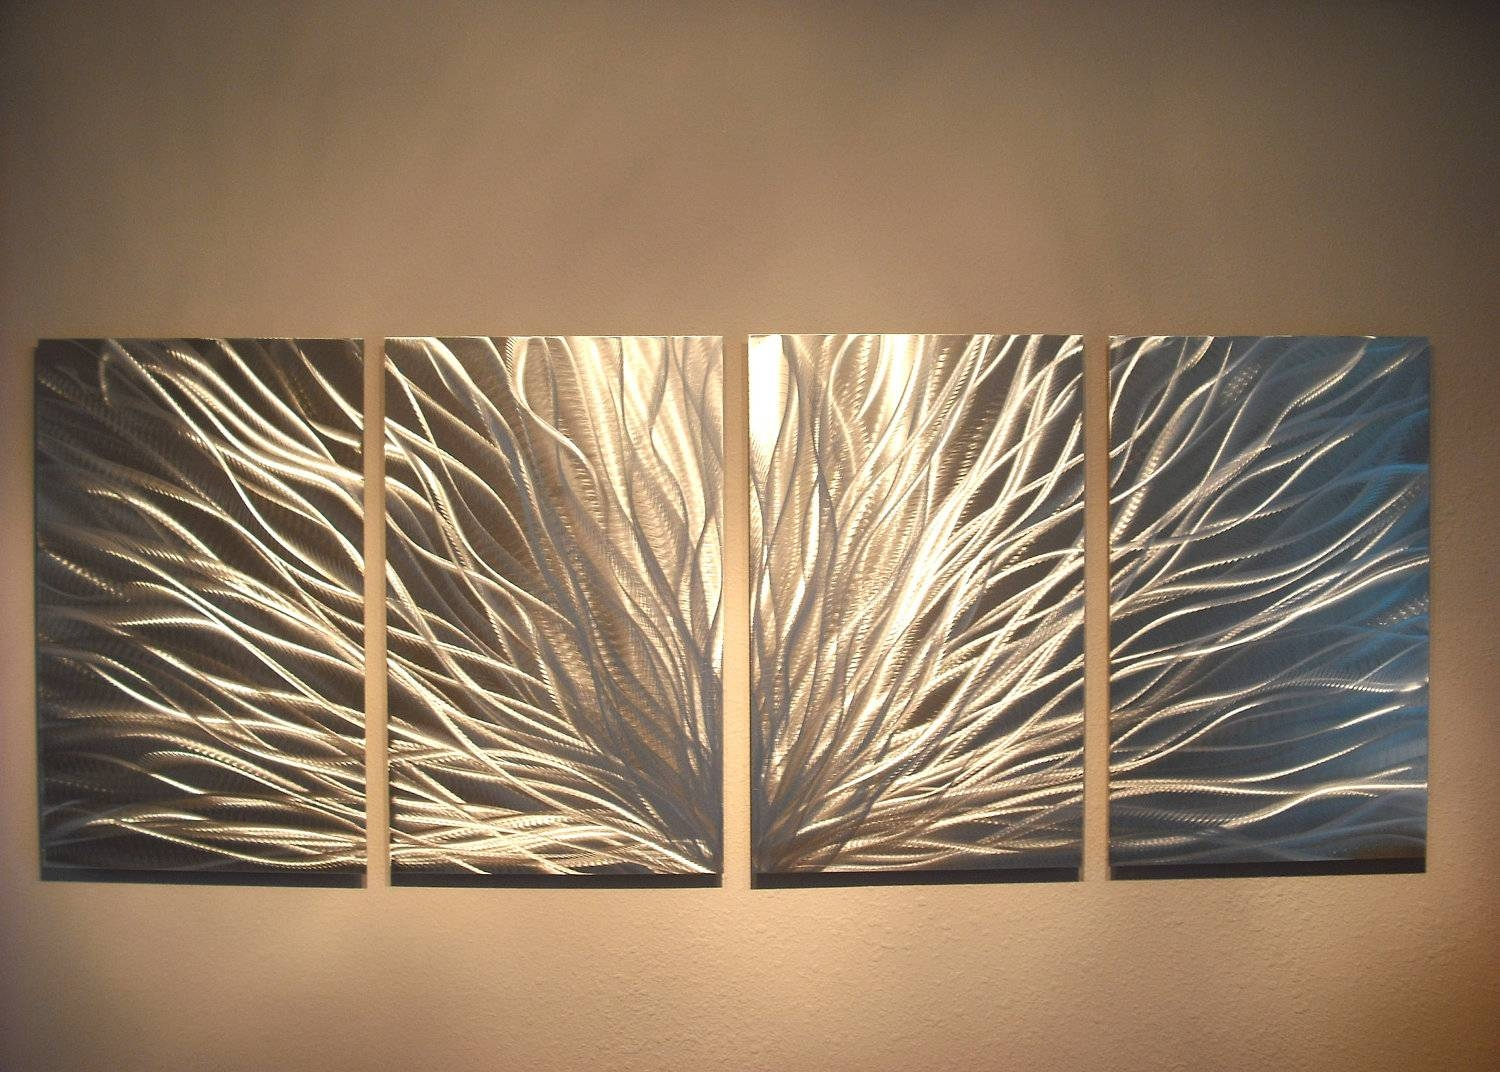 Radiance – Abstract Metal Wall Art Contemporary Modern Decor Pertaining To Most Popular Metal Wall Art Decorating (View 2 of 20)